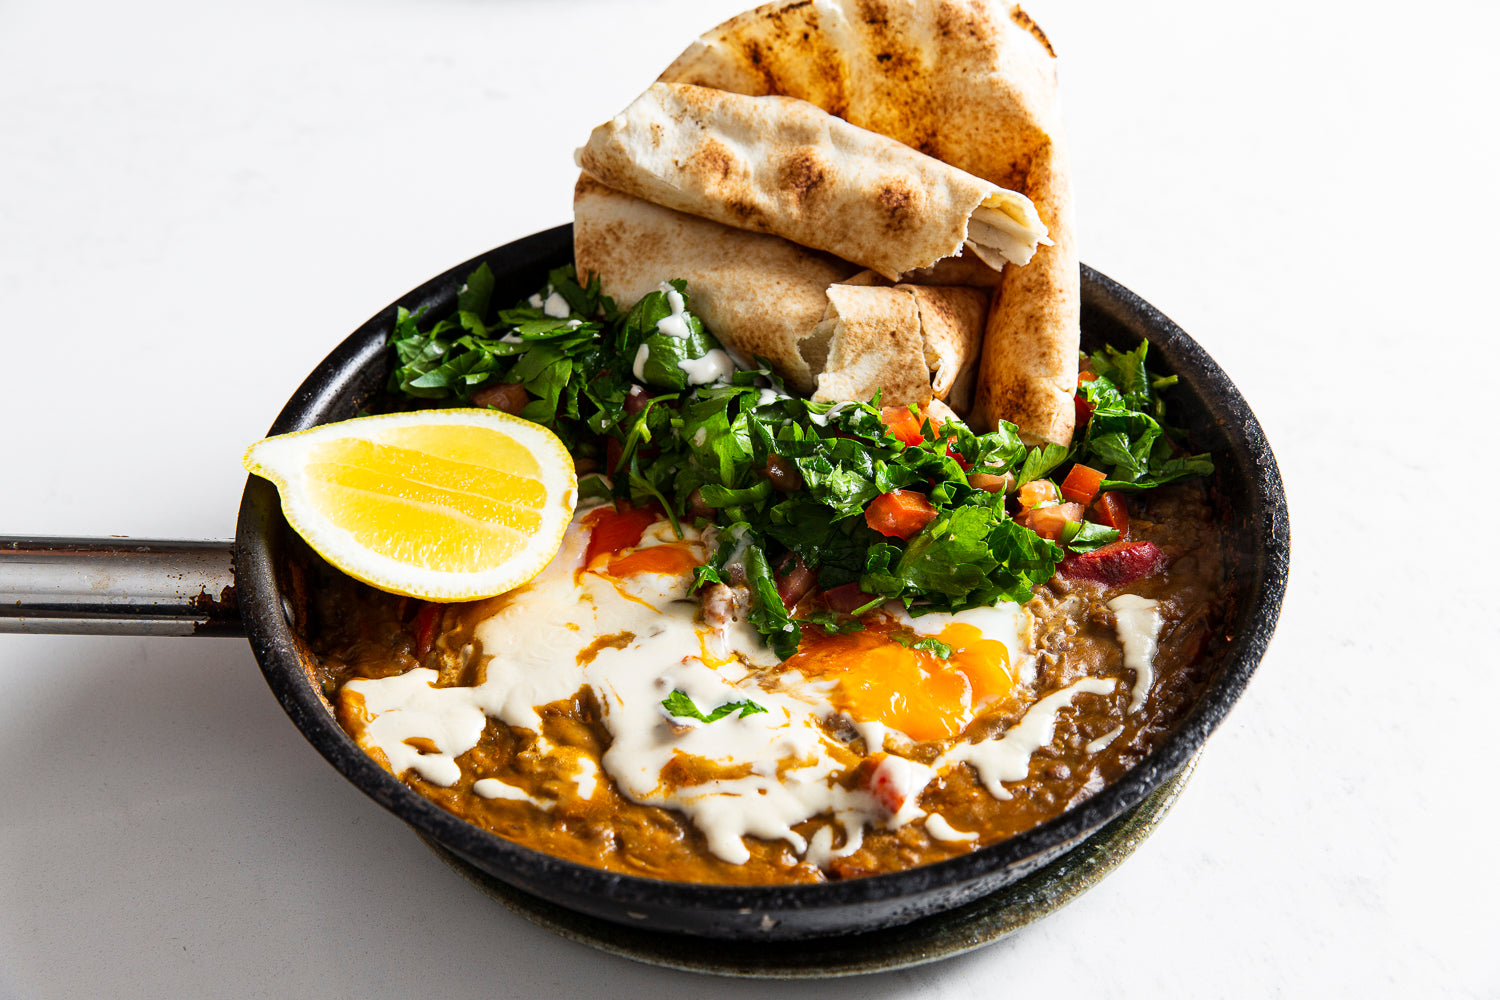 Ful medames - Pita with egg, tomato salad